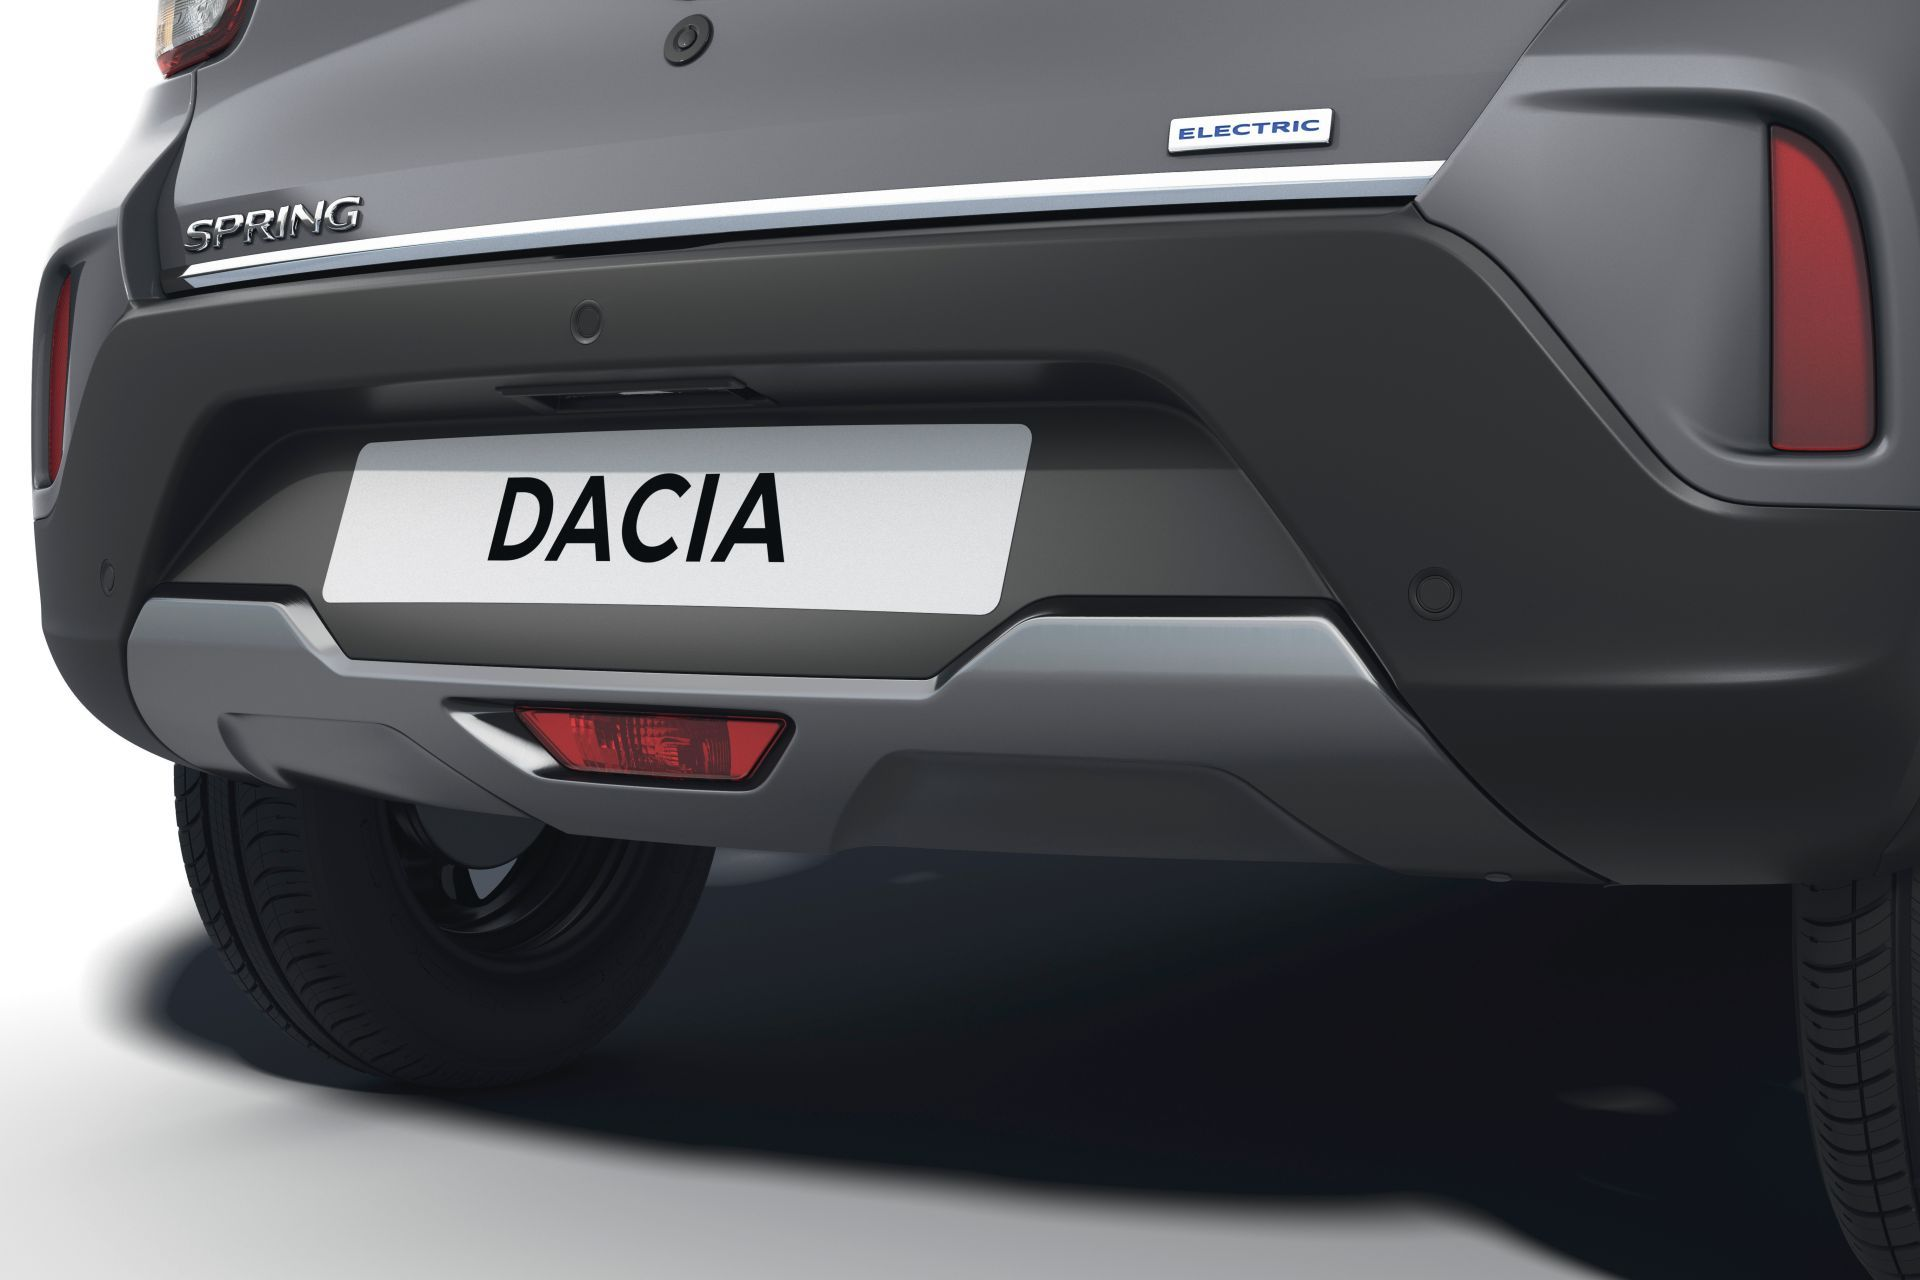 Dacia-Spring-Electric-24